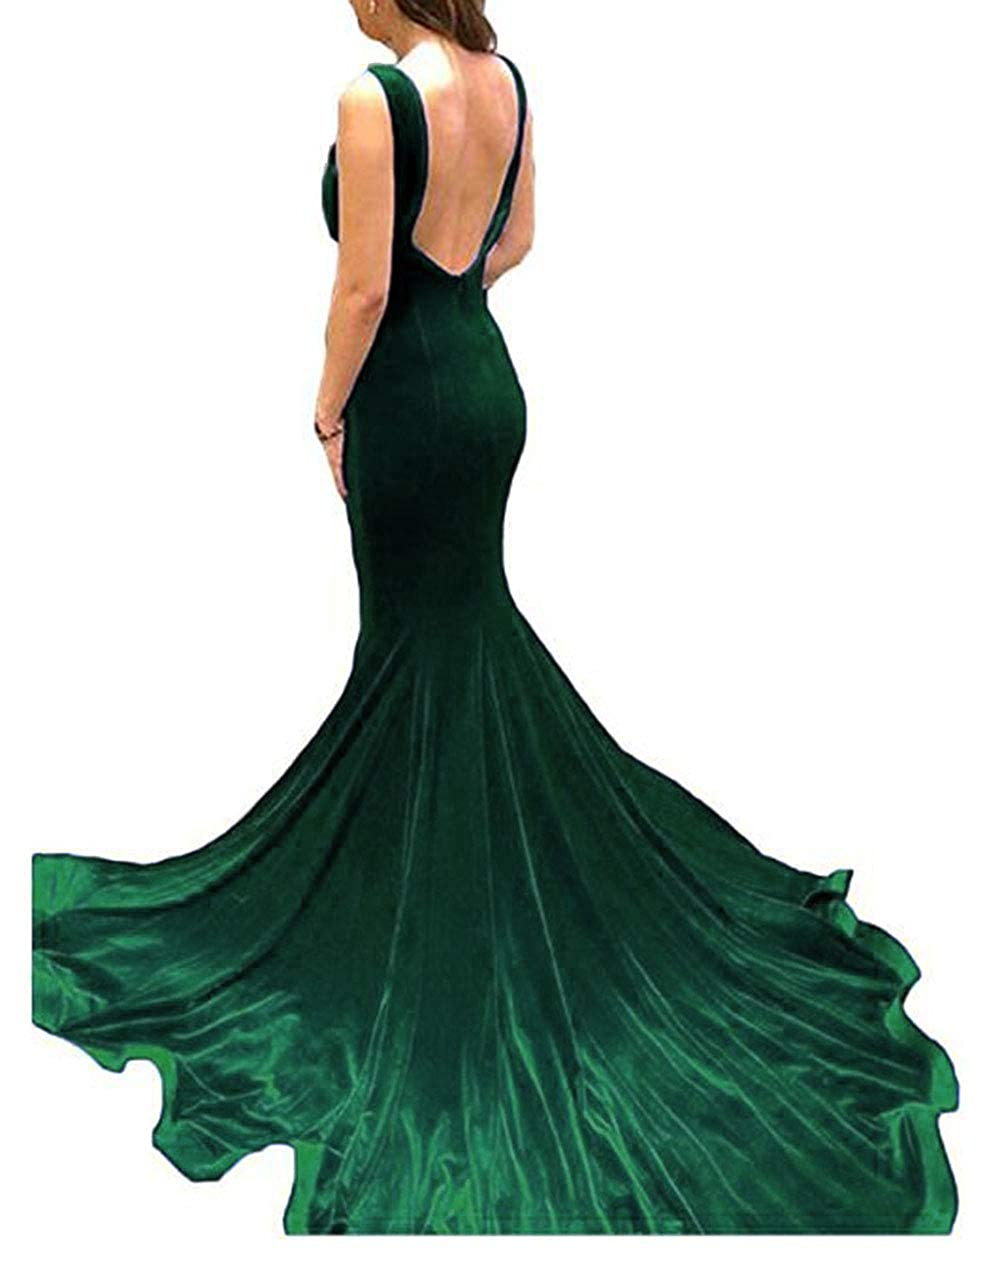 Dark Green alilith.Z Sexy Spaghetti Strap Velvet Prom Dresses Mermaid Long Formal Evening Dresses Party Gowns for Women with Slit